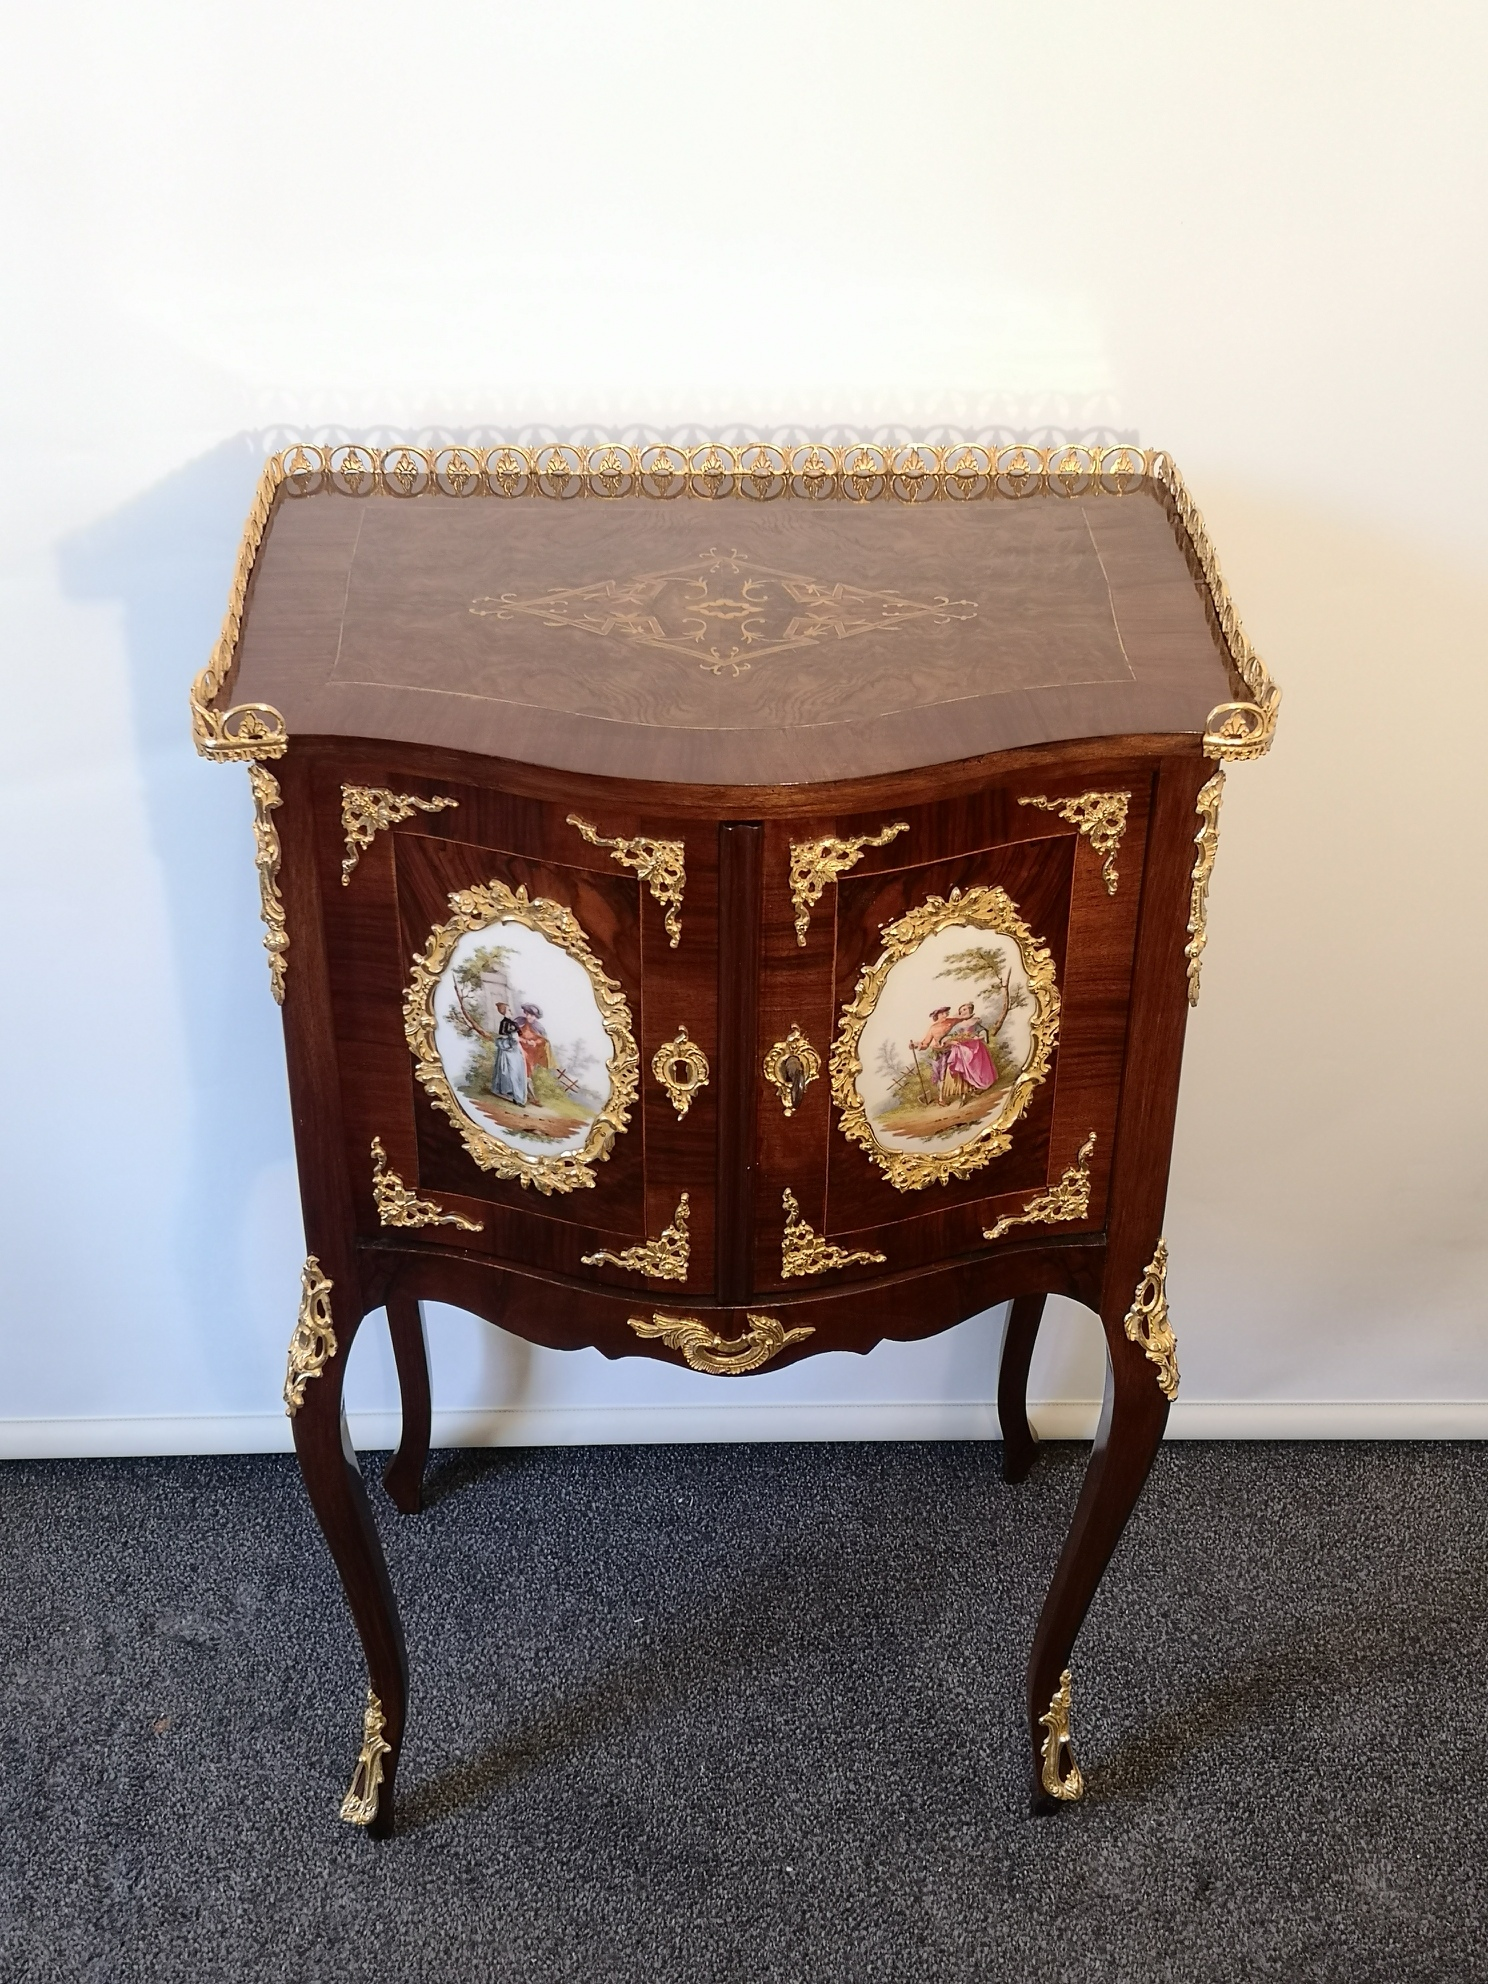 19th Century French Bedside Cabinet With Porcelain Plaques